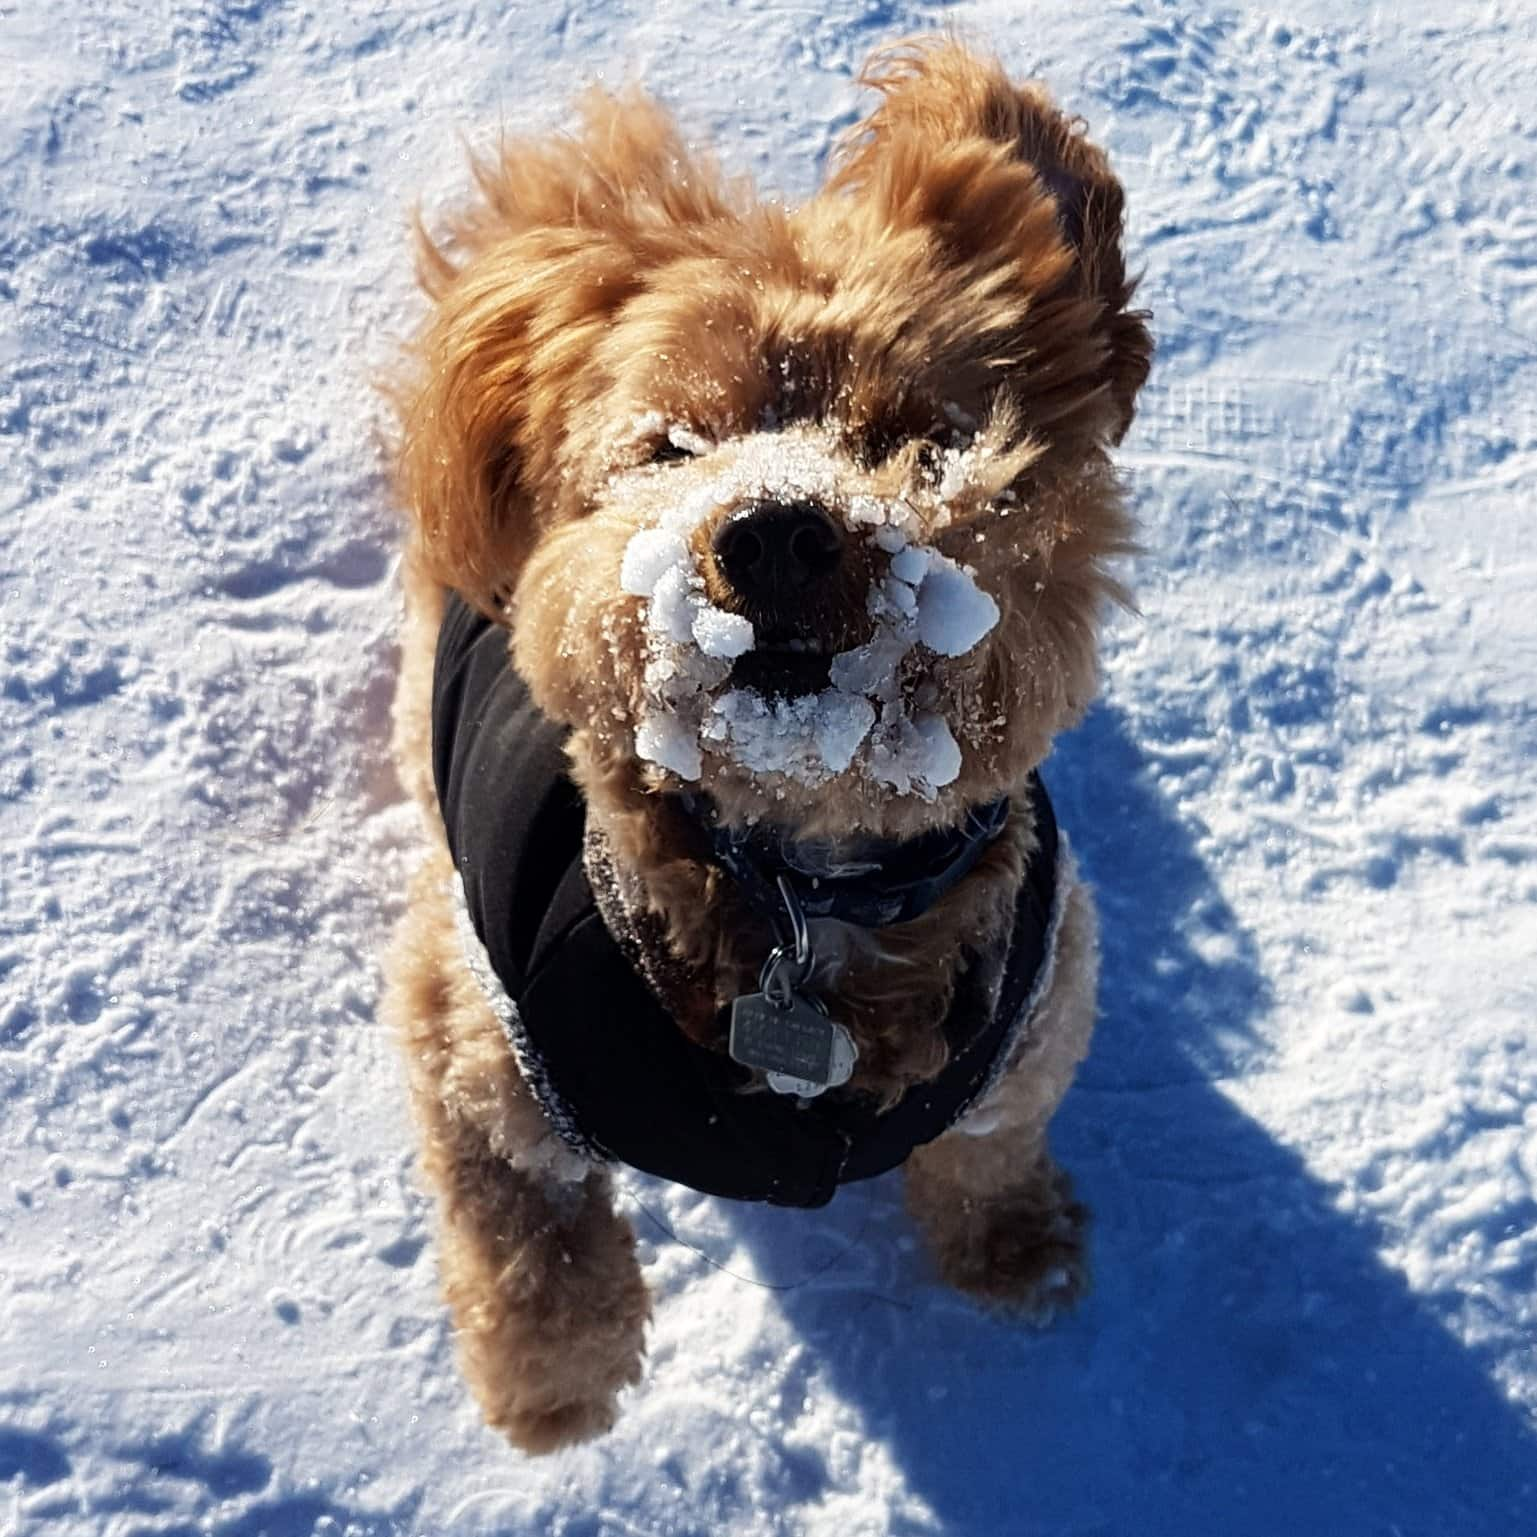 A dog with a face full of snow.